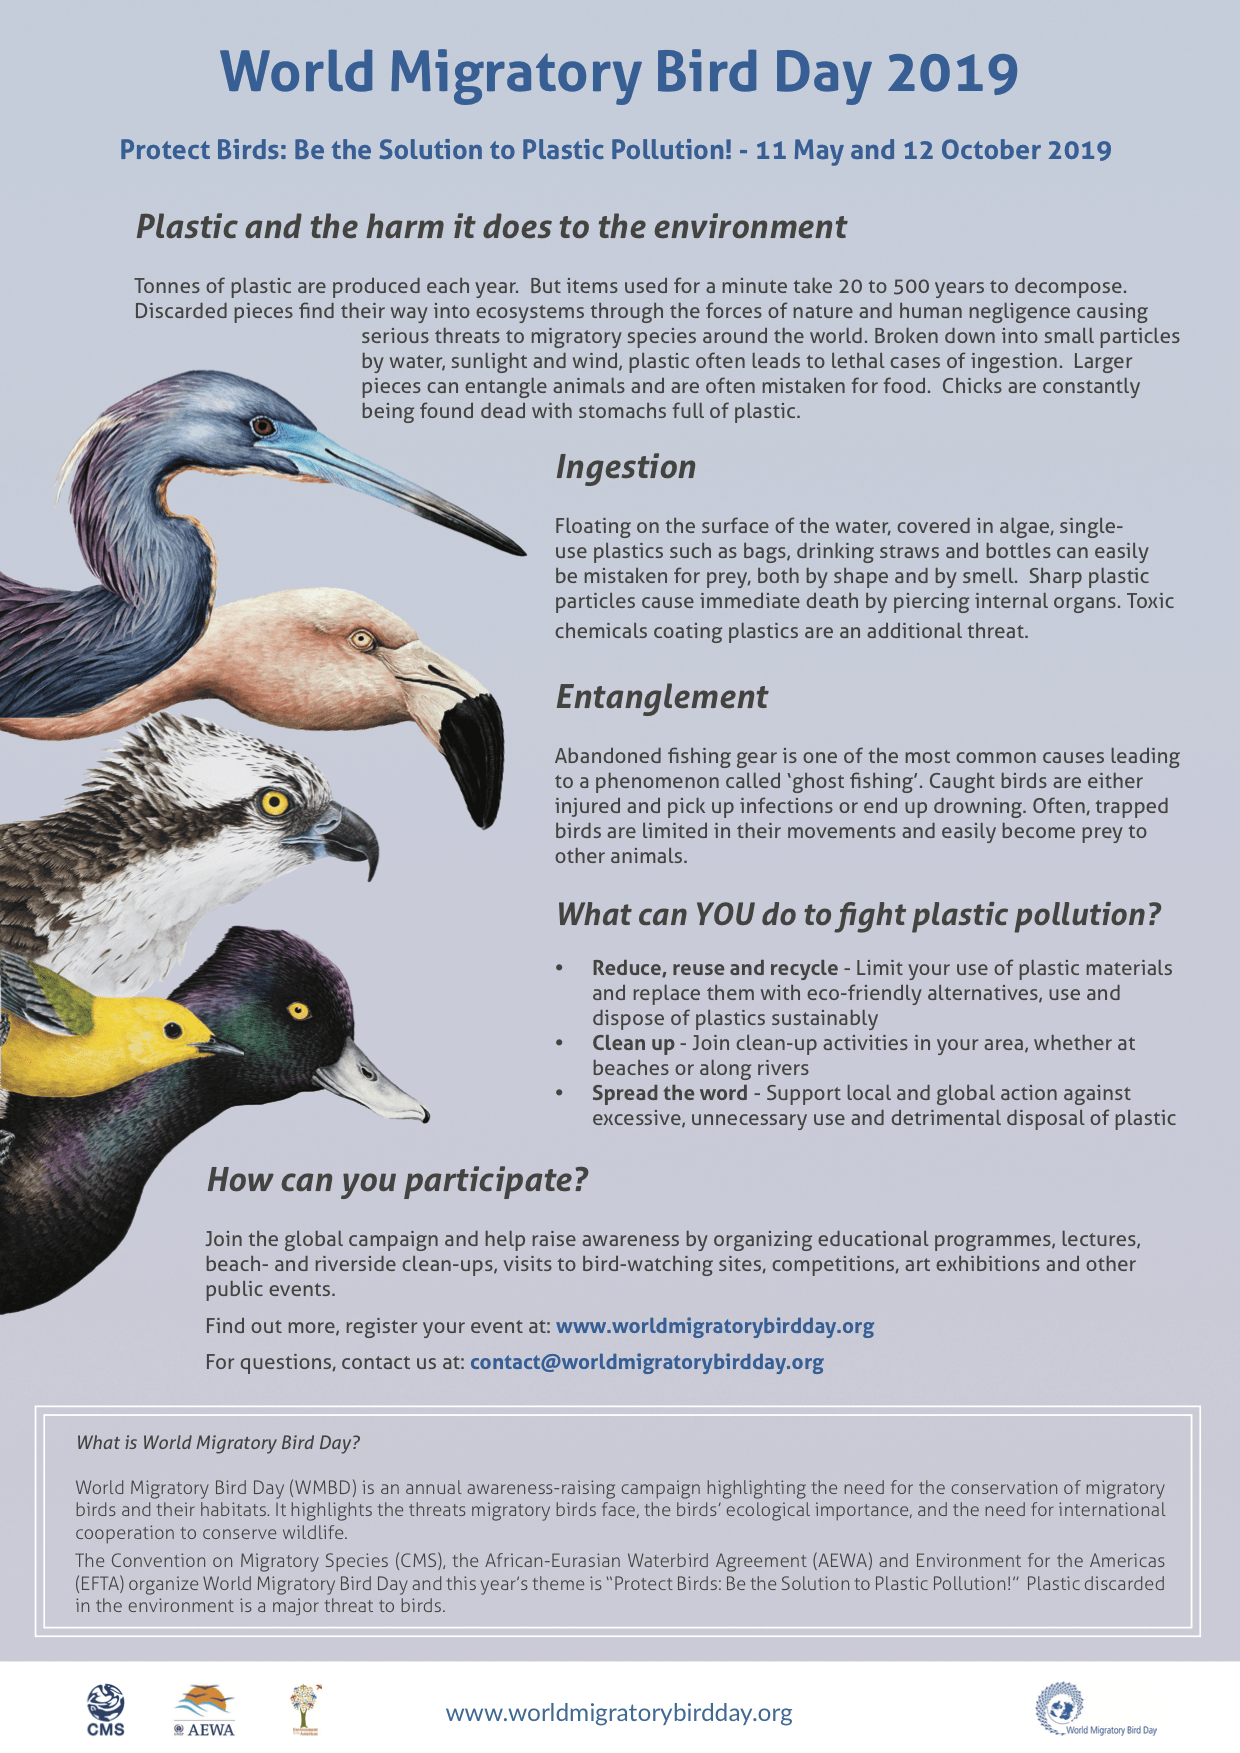 2019 World Migratory Bird Day Flyer